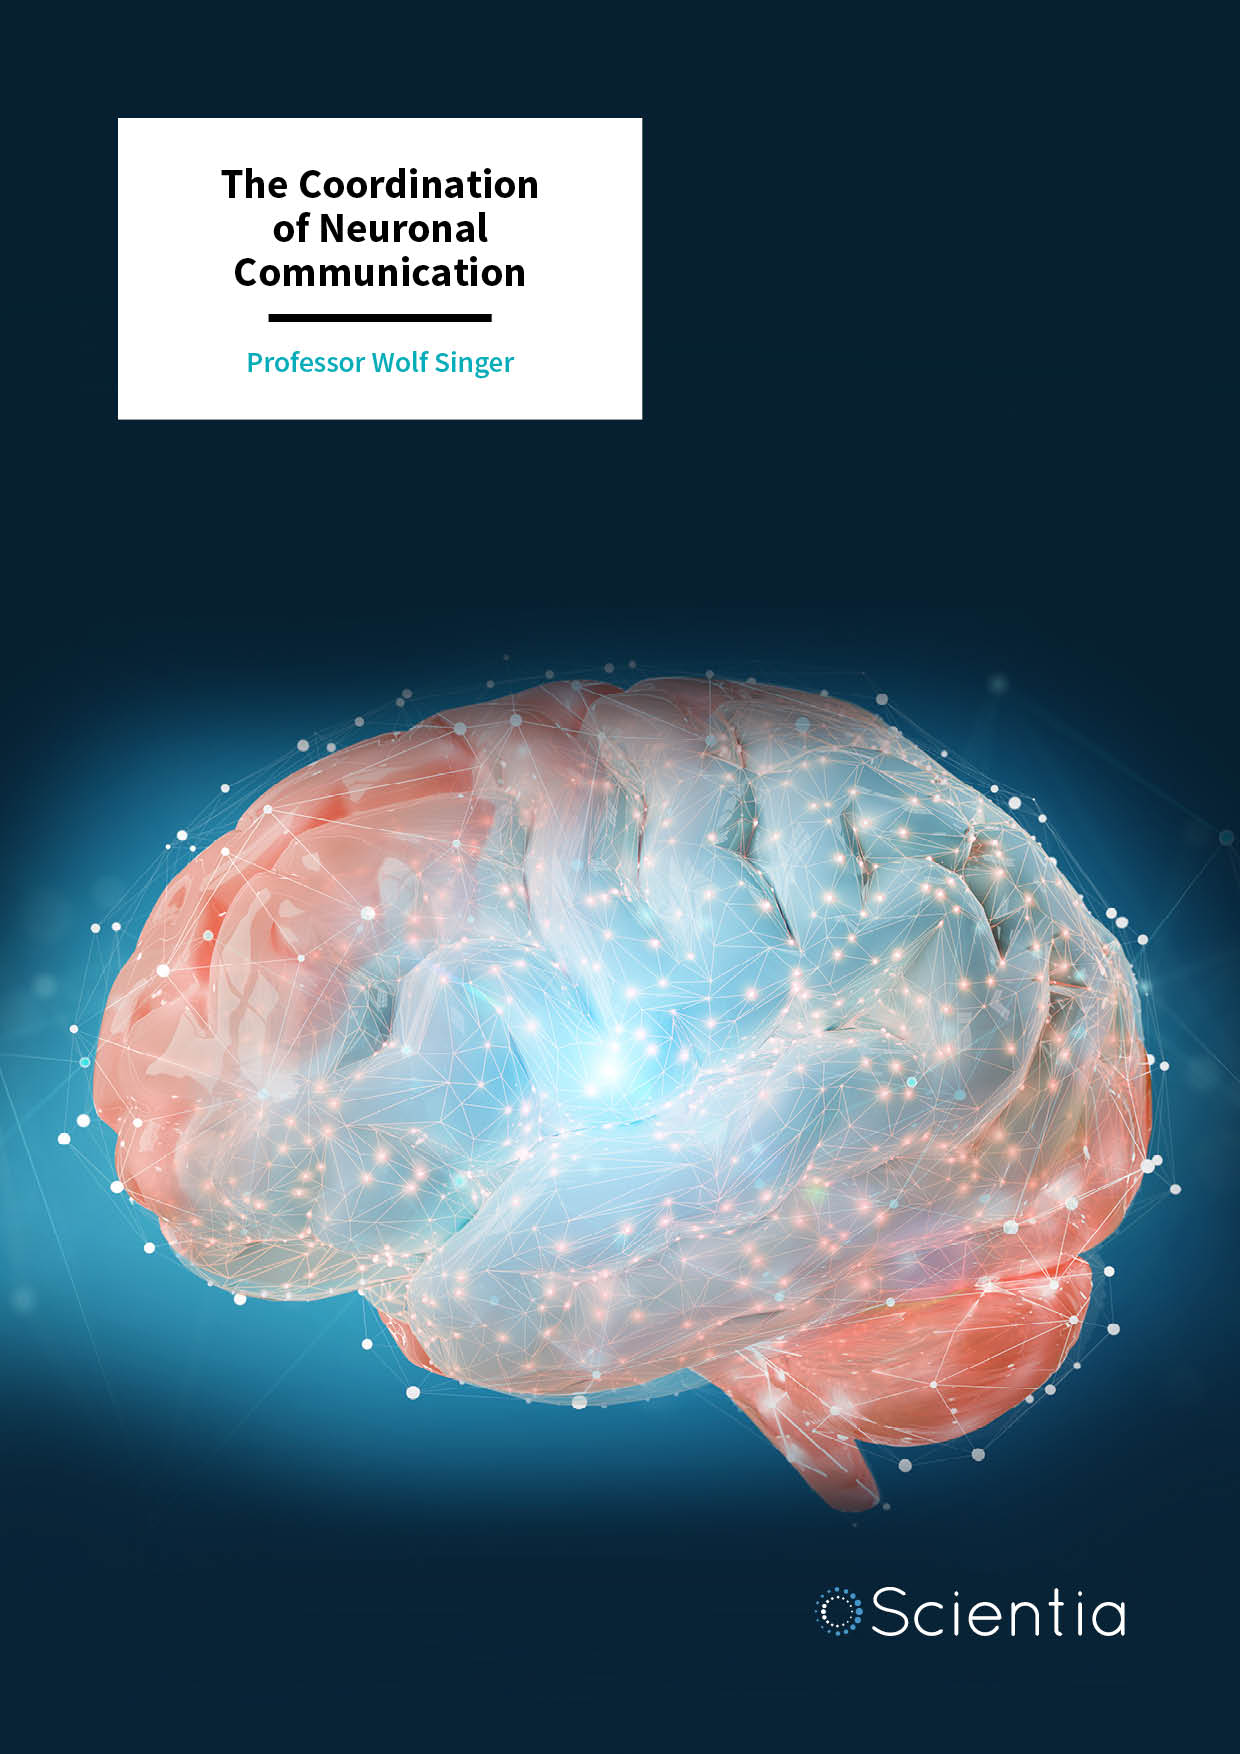 Professor Wolf Singer – The Coordination of Neuronal Communication